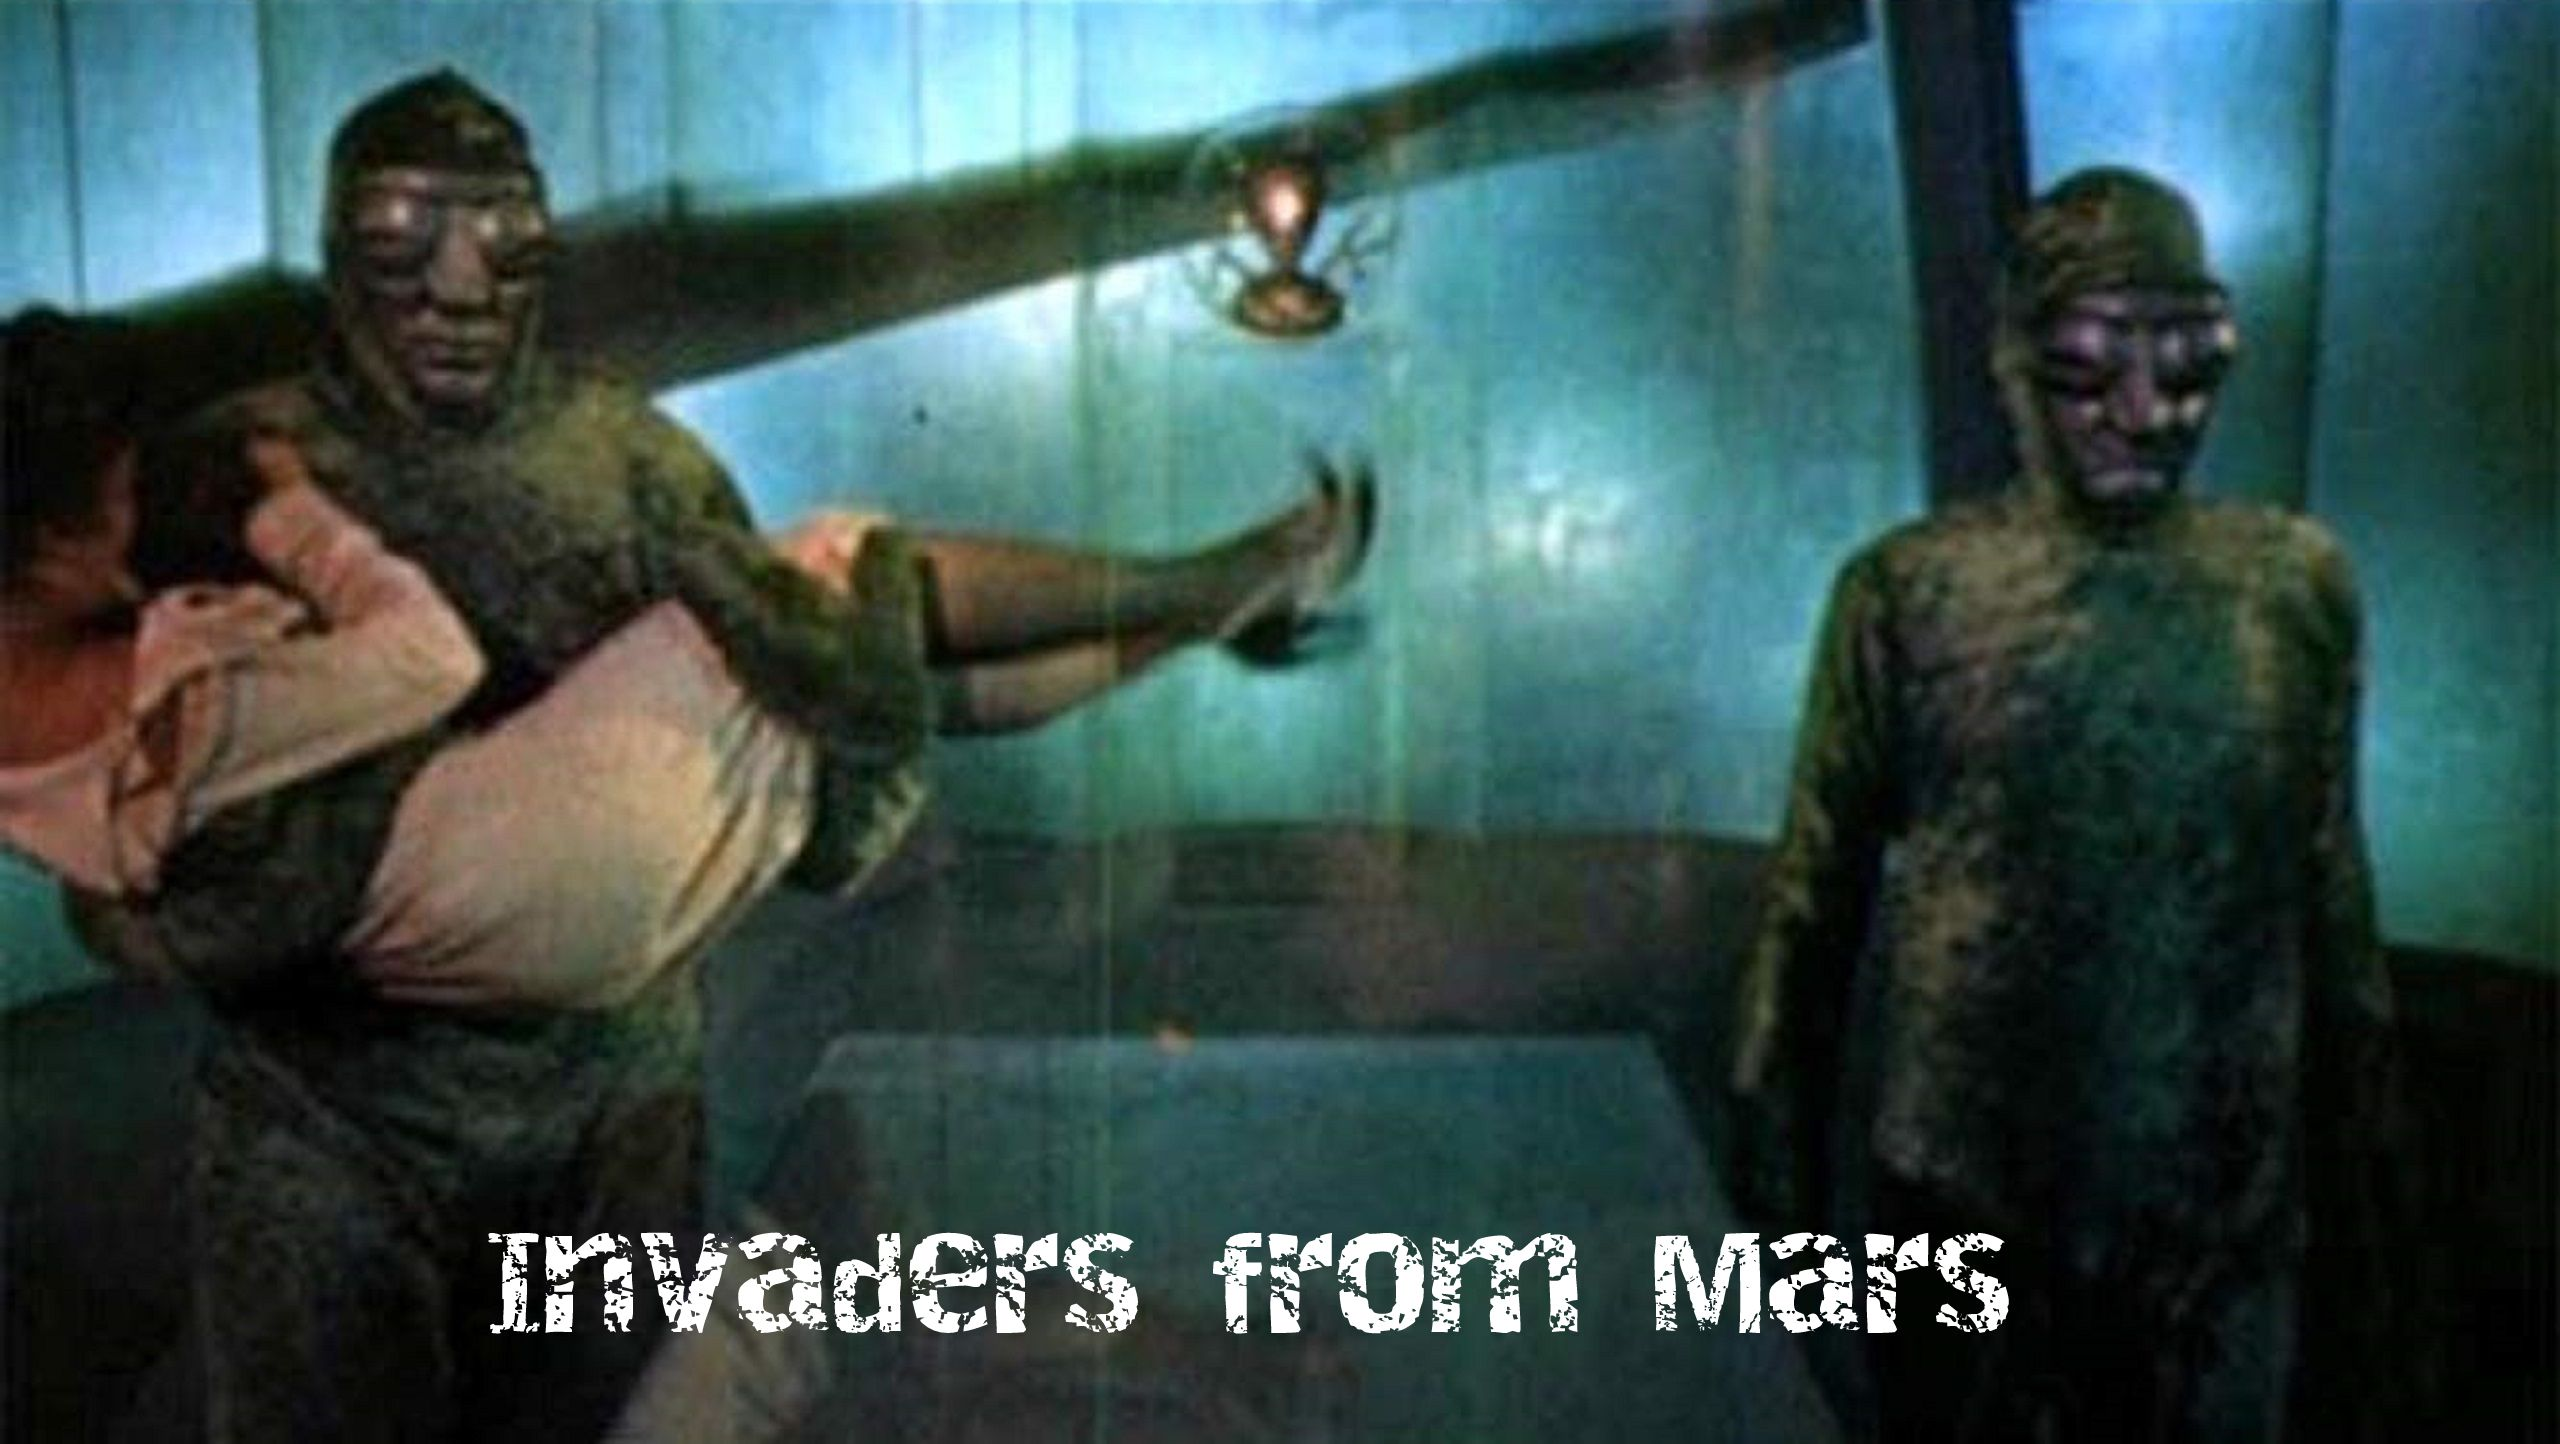 Invaders from Mars (1953) aliens